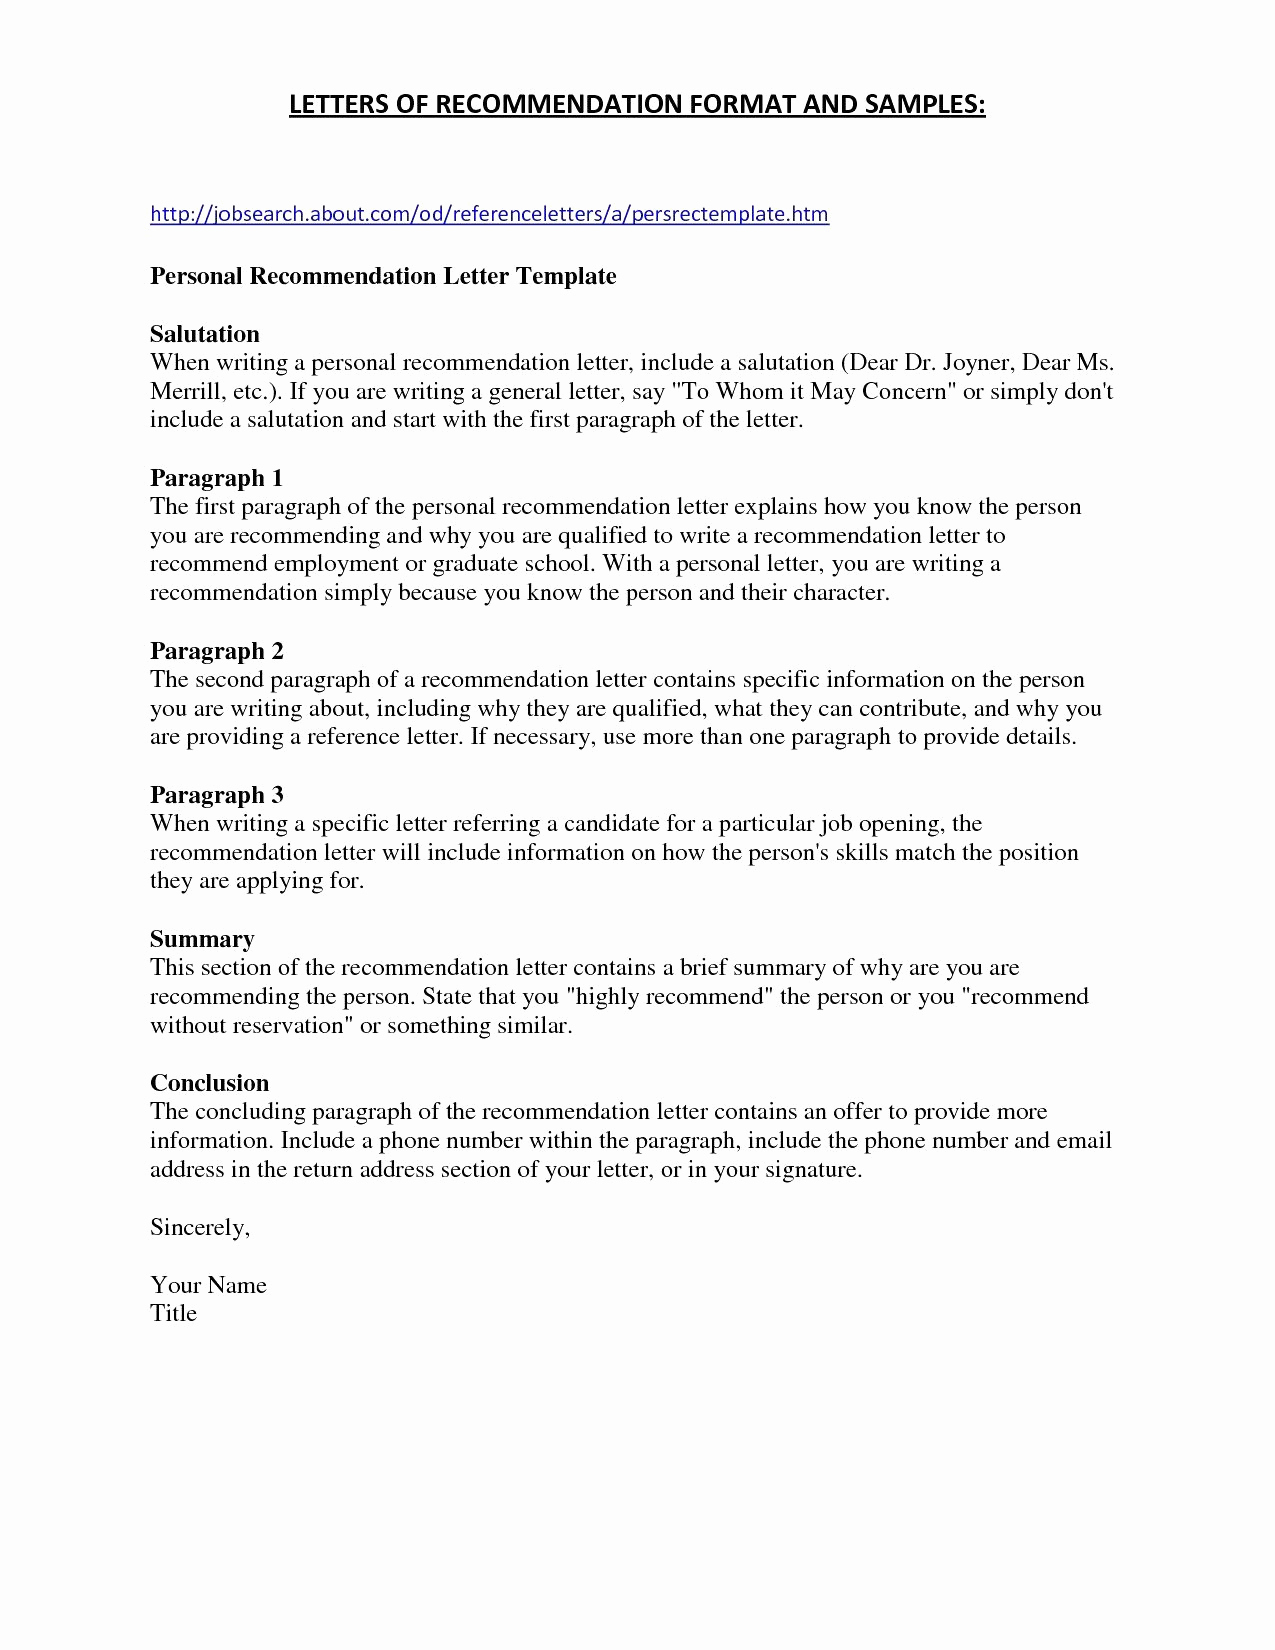 clinical research coordinator resume bullet points